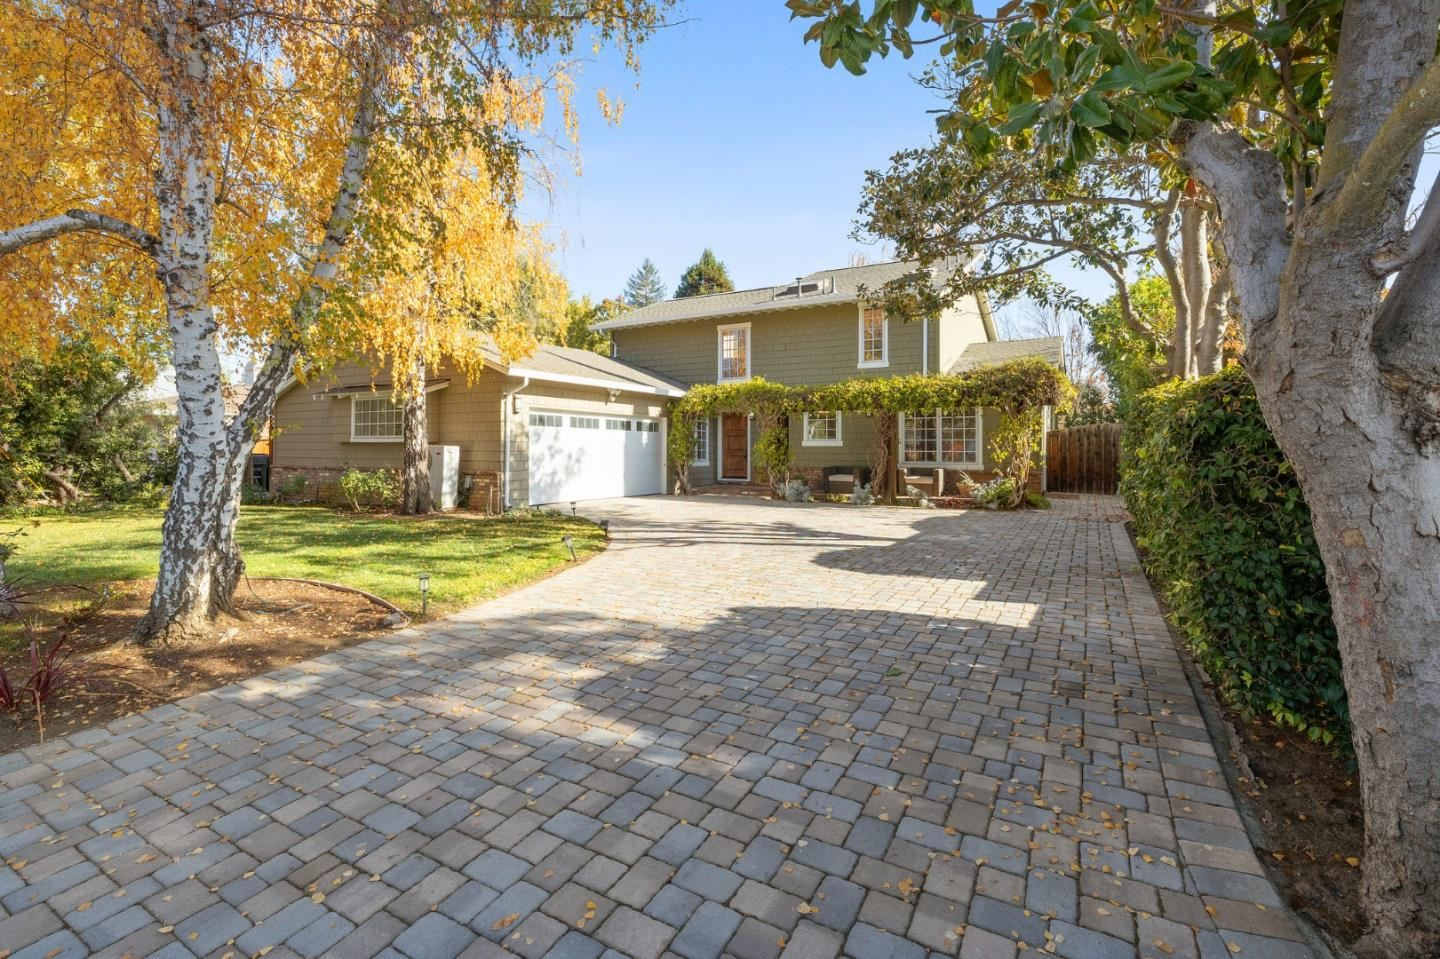 Photo for 1075 Russell AVE, LOS ALTOS, CA 94024 (MLS # ML81822578)